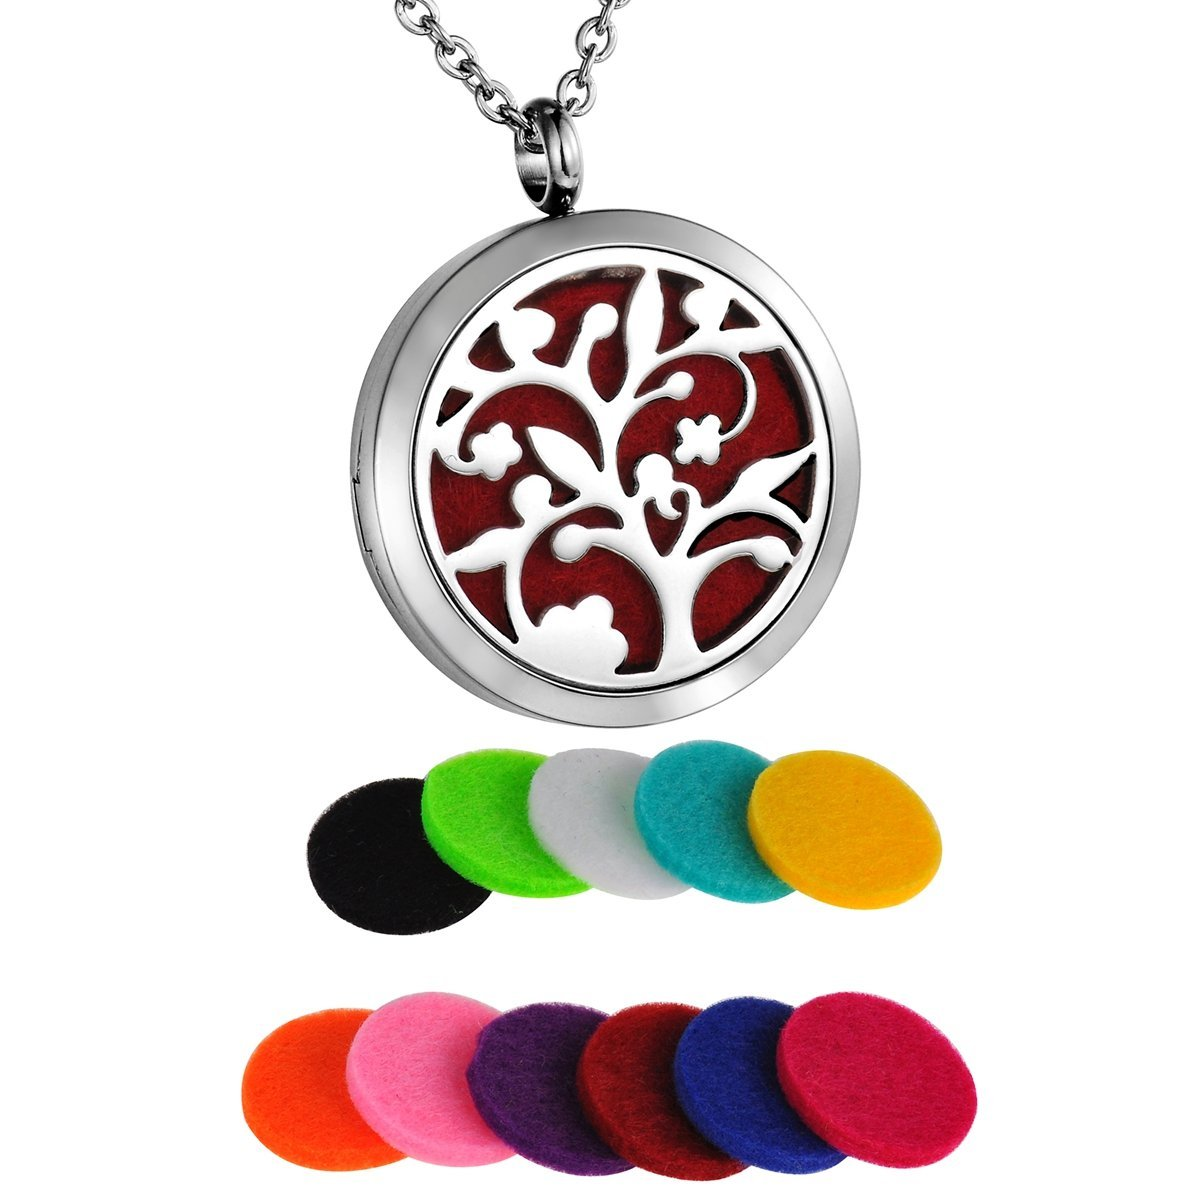 HooAMI Aromatherapy Essential Oil Diffuser Necklace - Stainless Steel Tree of Life Round Locket Pendant TY BETY110872